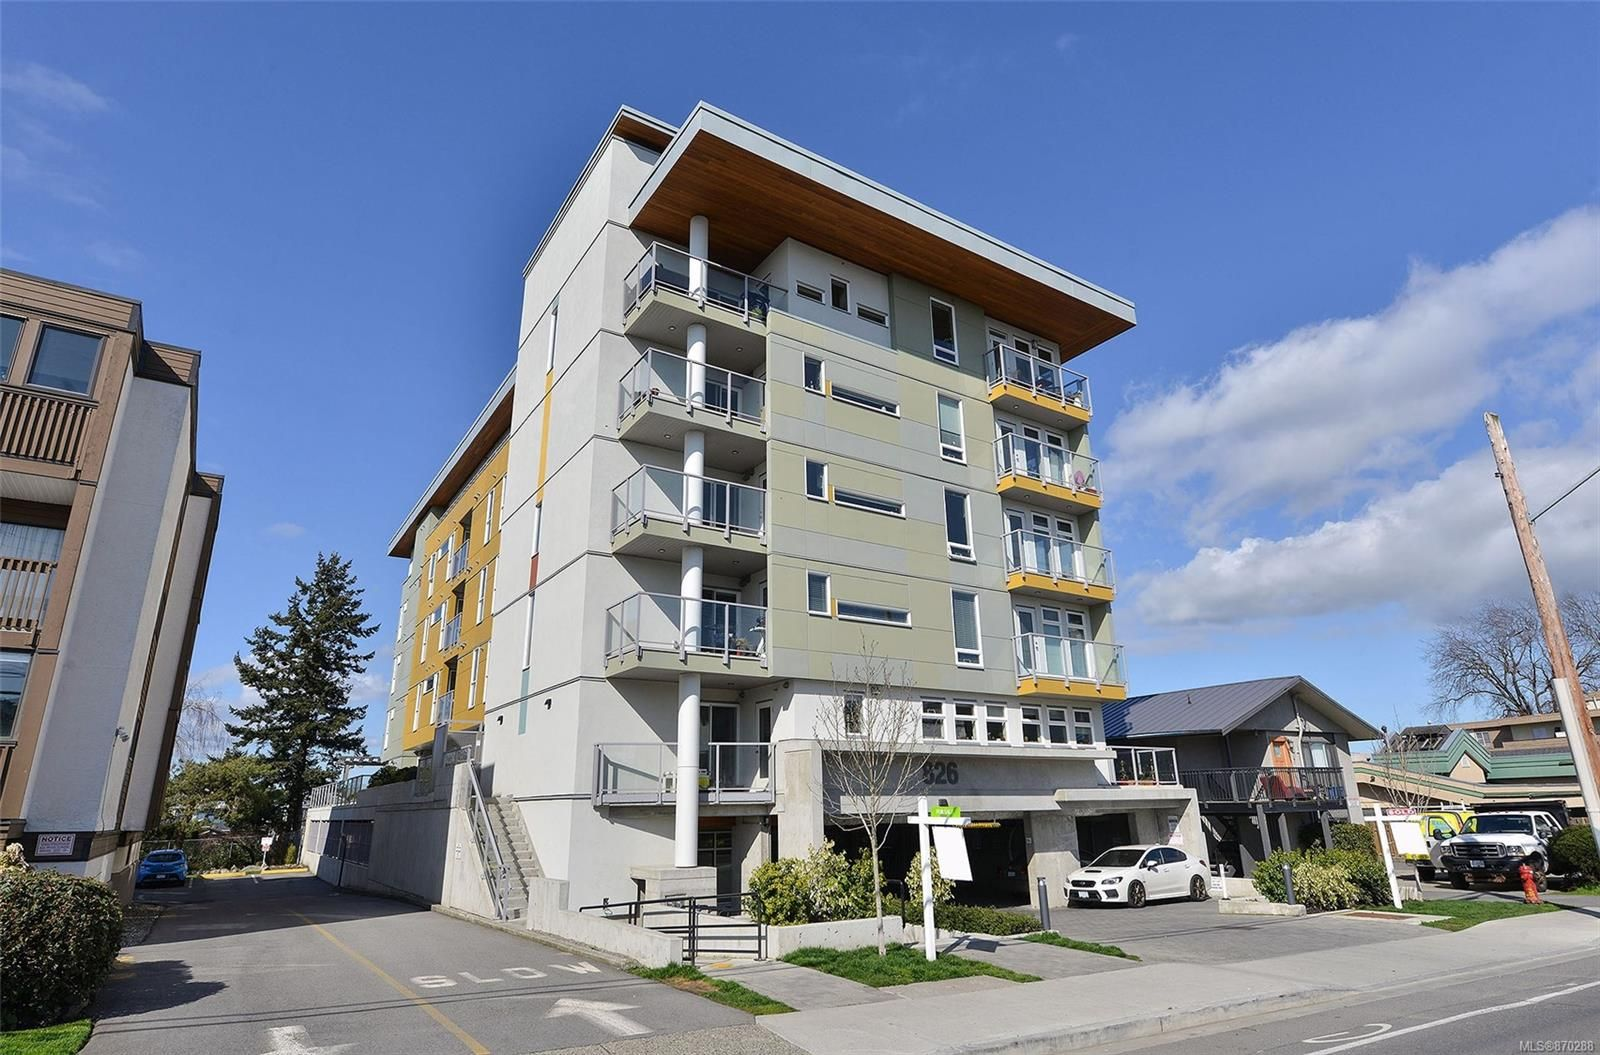 Main Photo: 401 826 Esquimalt Rd in : Es Esquimalt Condo for sale (Esquimalt)  : MLS®# 870288